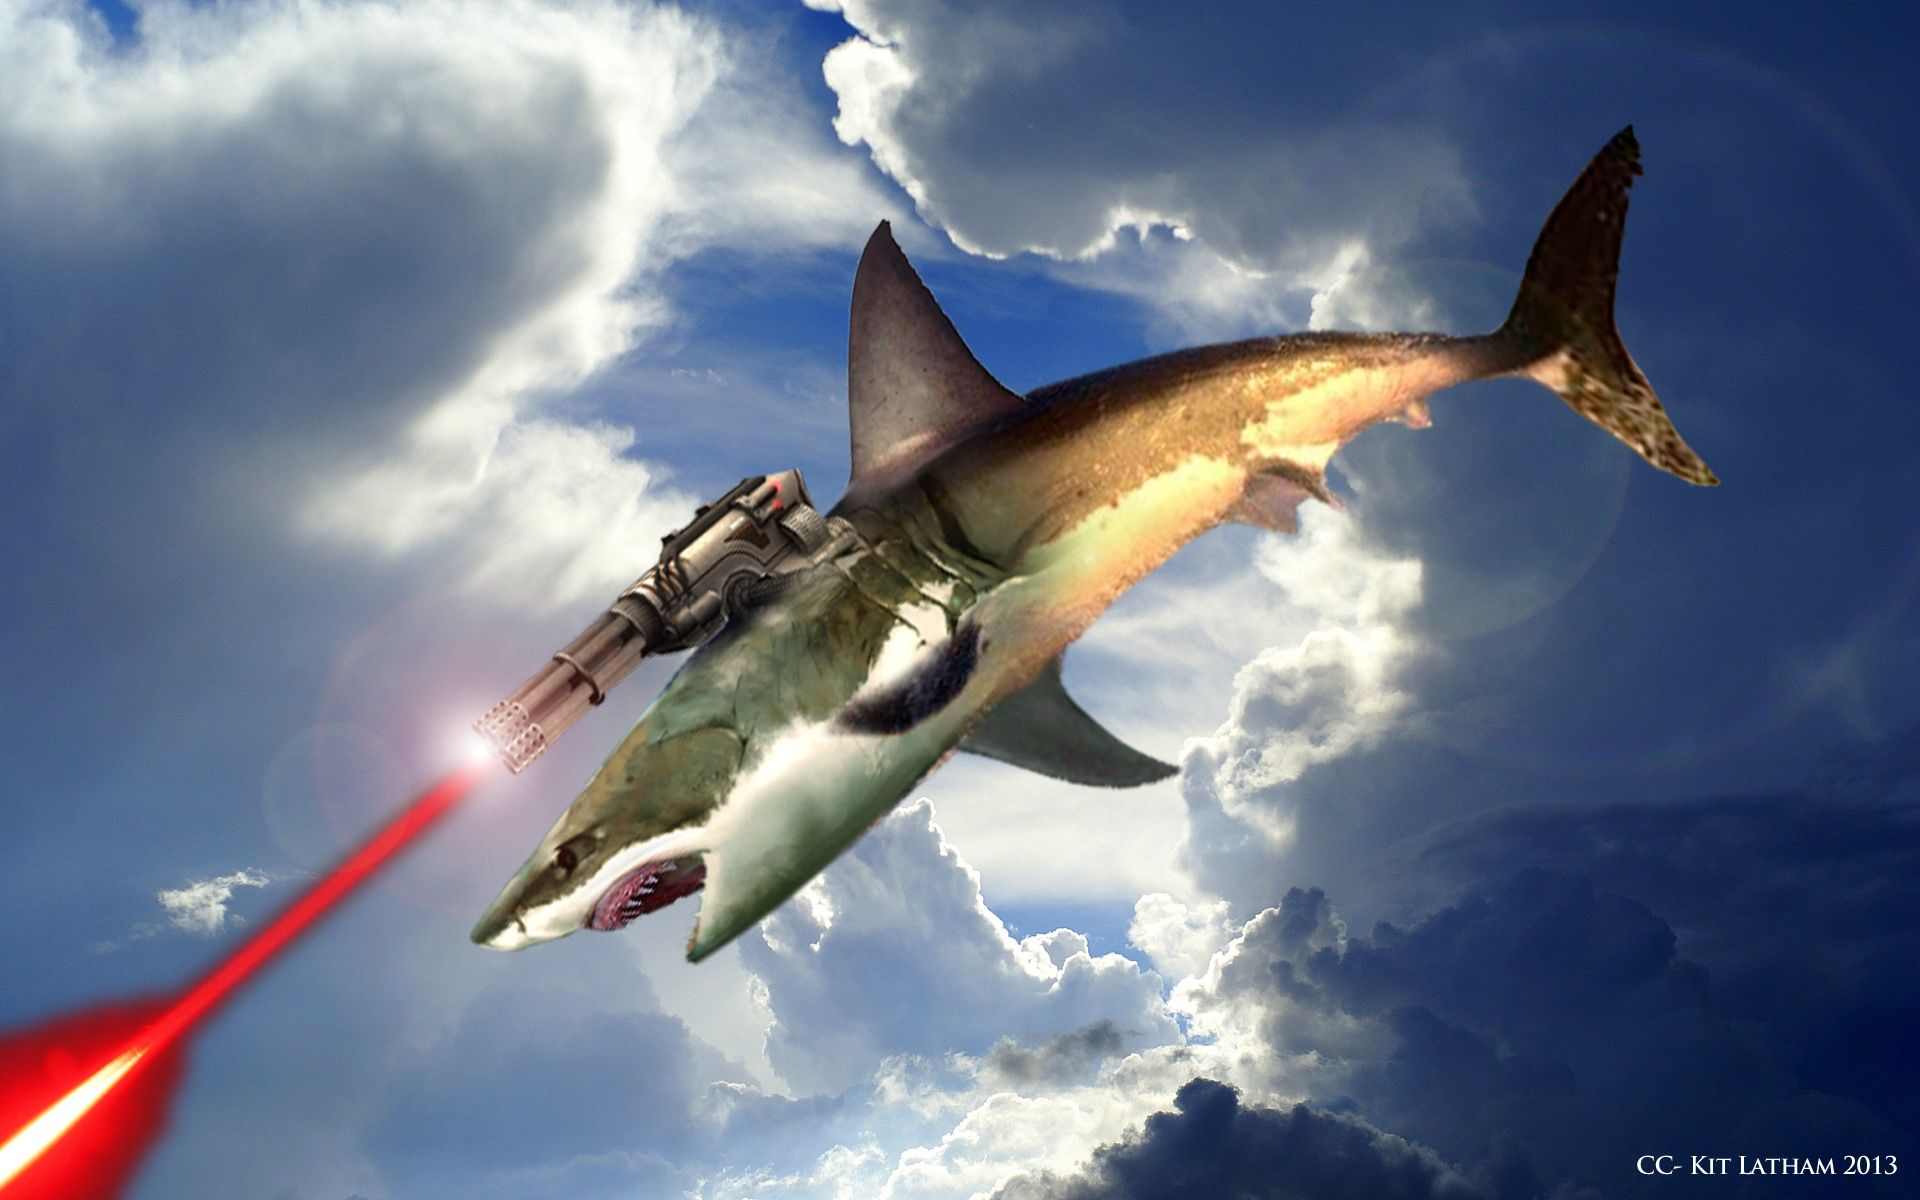 flying sharks with lasers